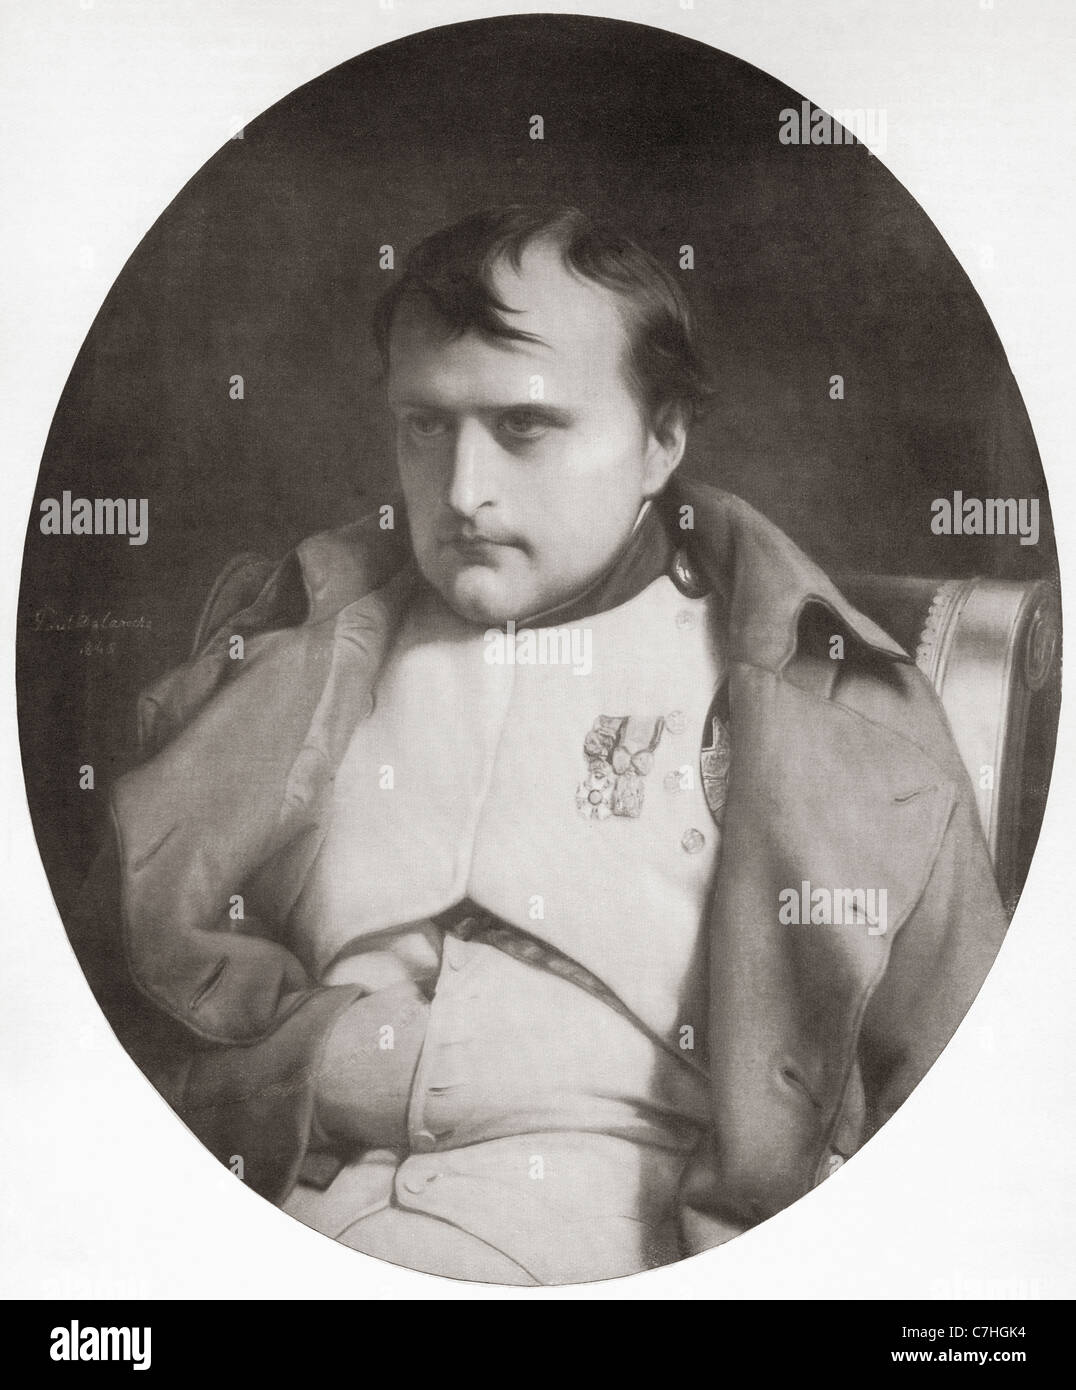 Napoleon Bonaparte, 1769 – 1821. French military and political leader and Emperor of the French from 1804 to 1815 - Stock Image